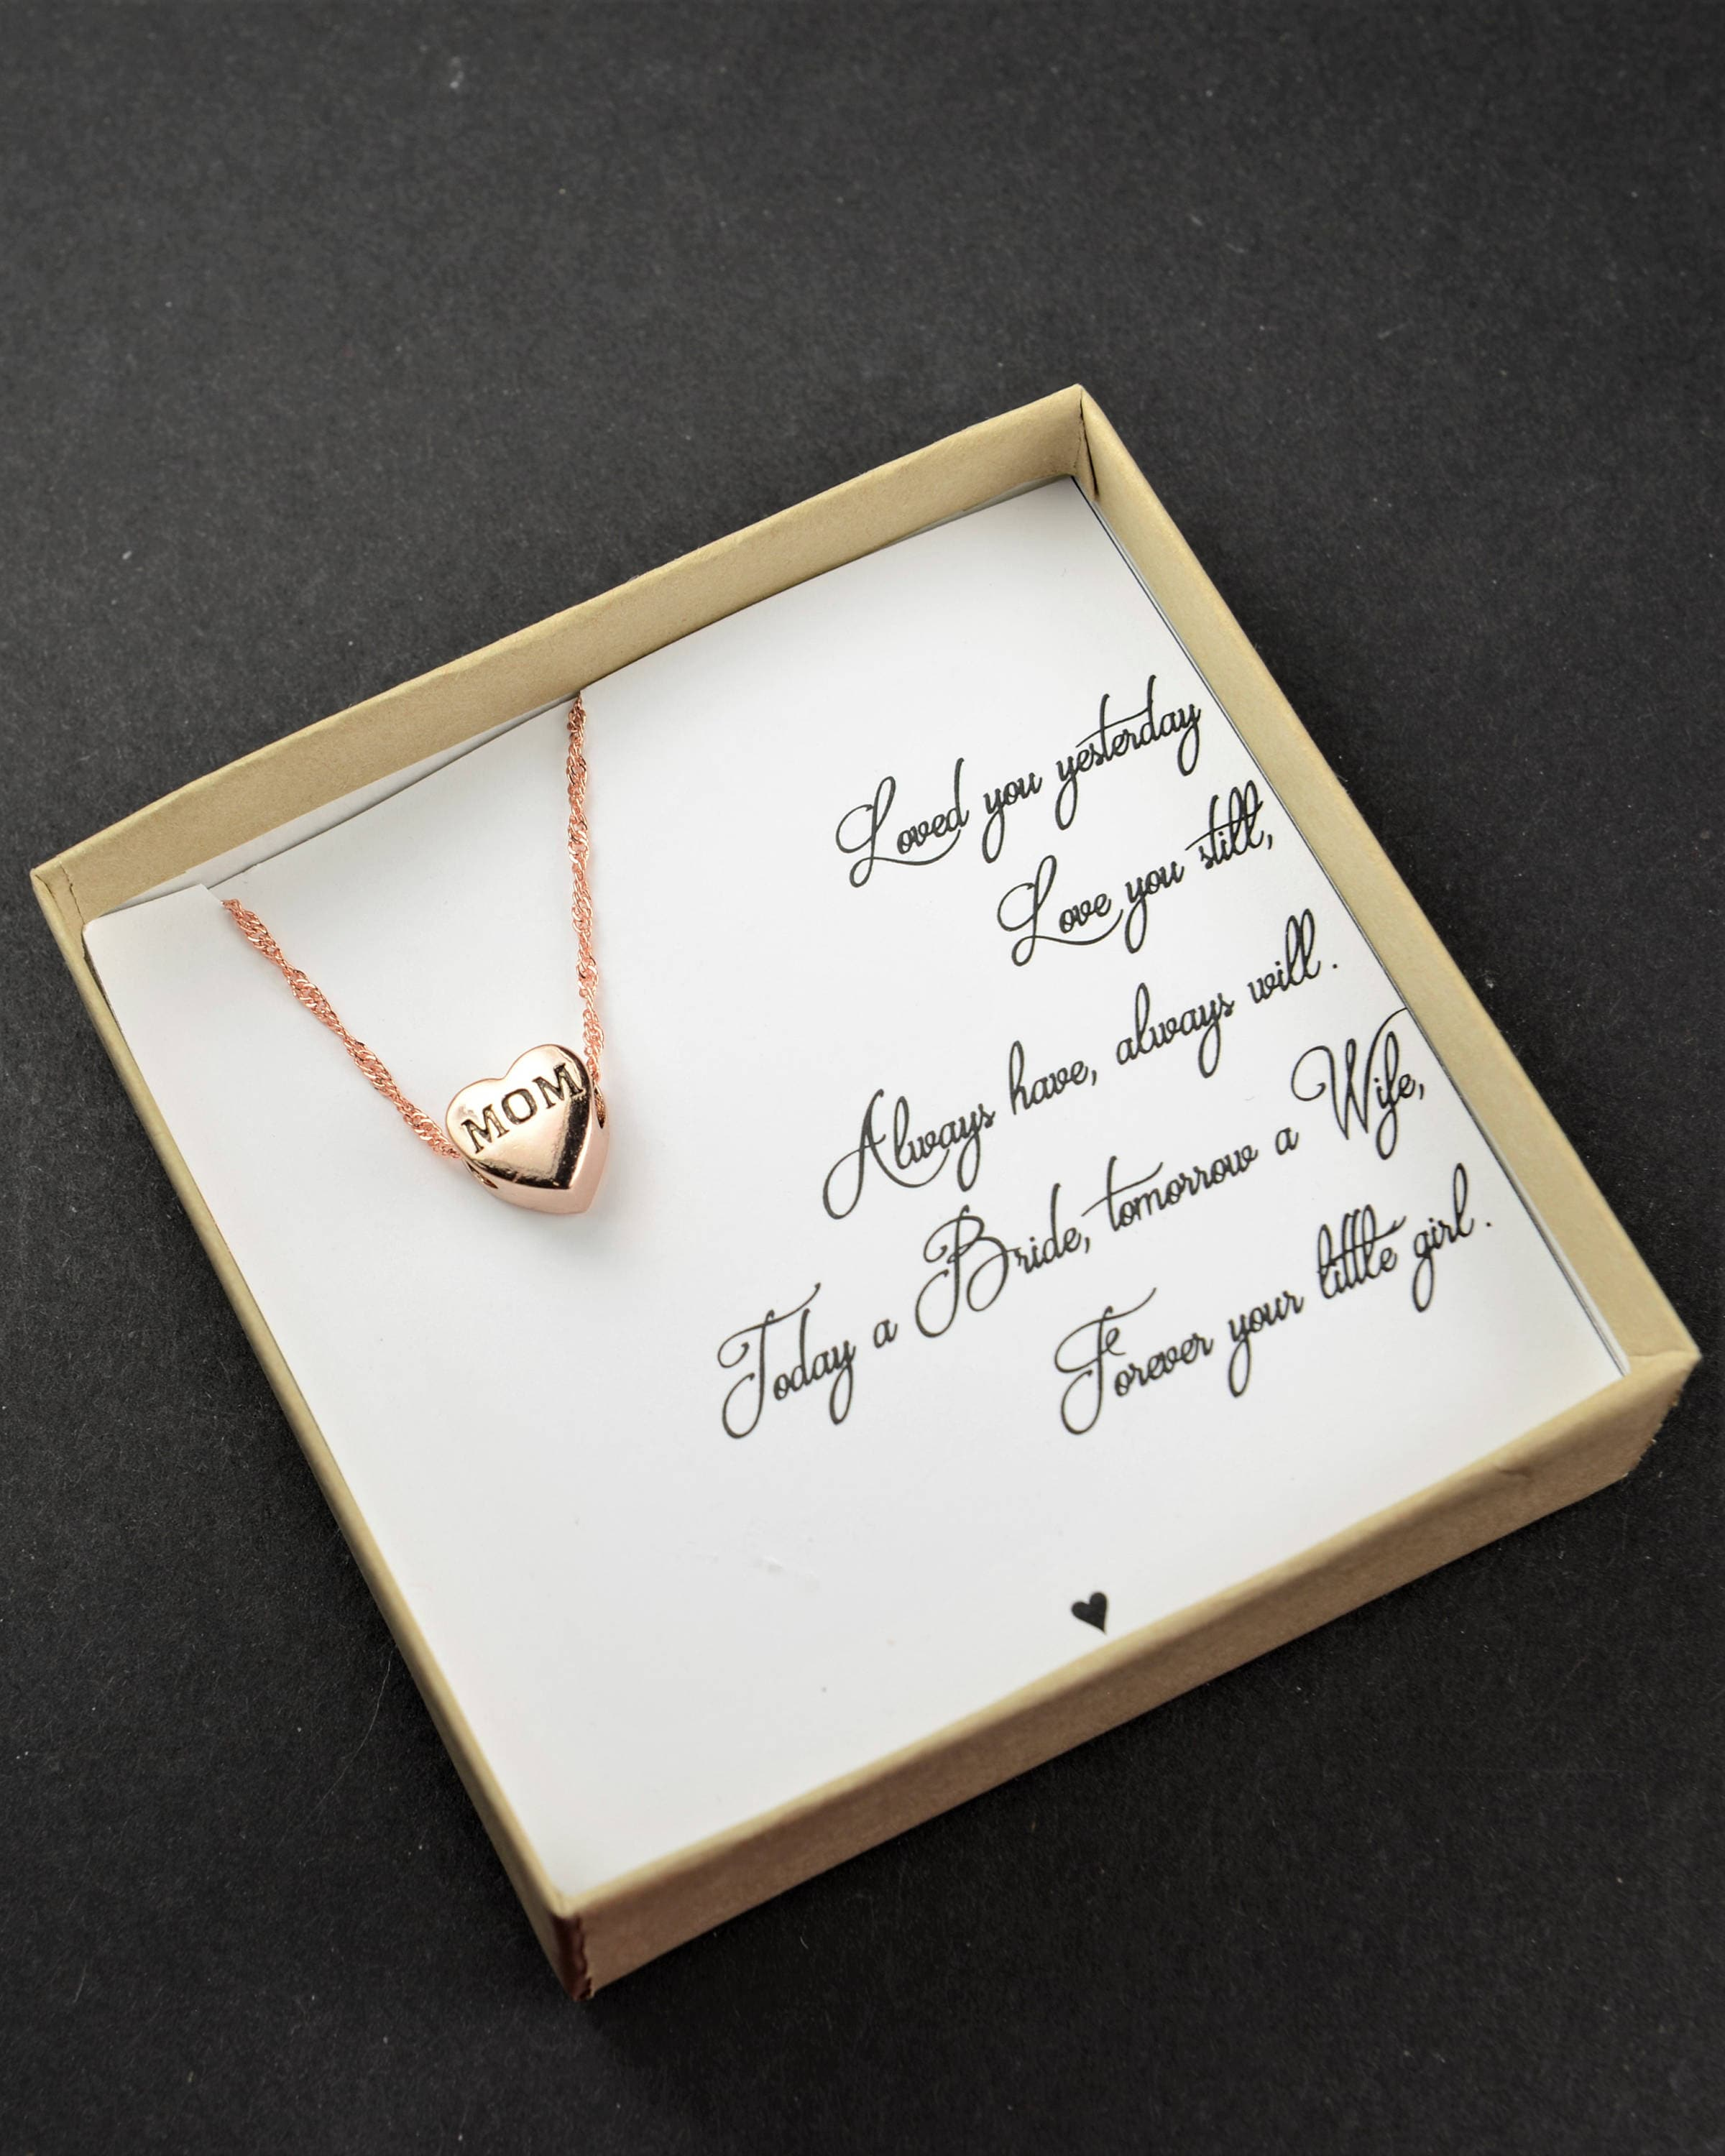 Mother of the Bride gift from bride daughter necklace wedding gift ...